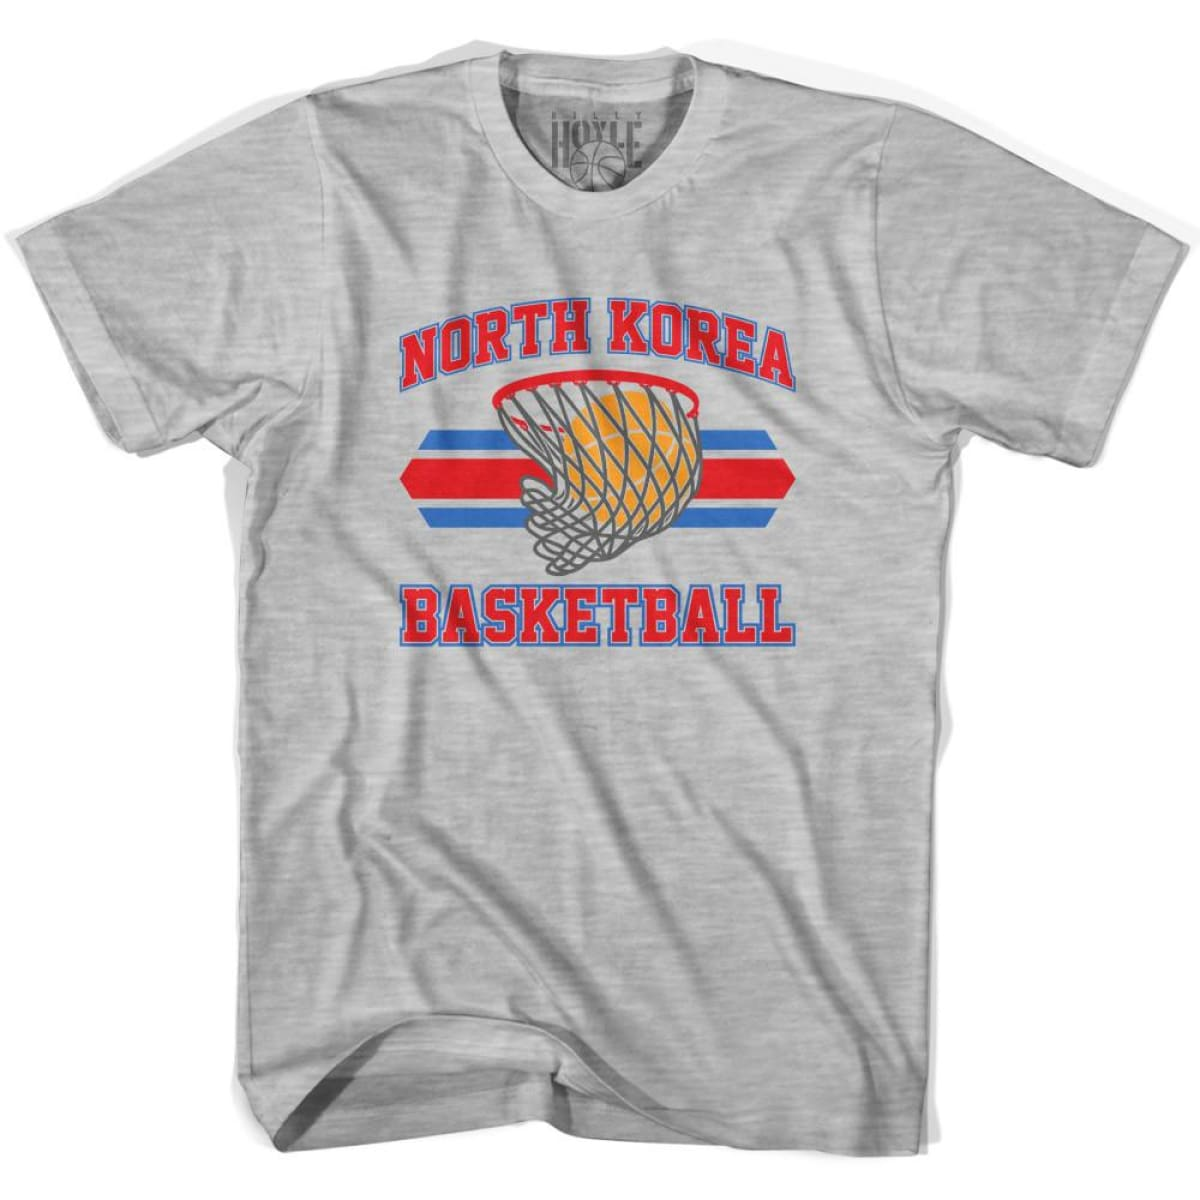 North Korea 90s Basketball T-shirts - Grey Heather / Youth X-Small - Basketball T-shirt